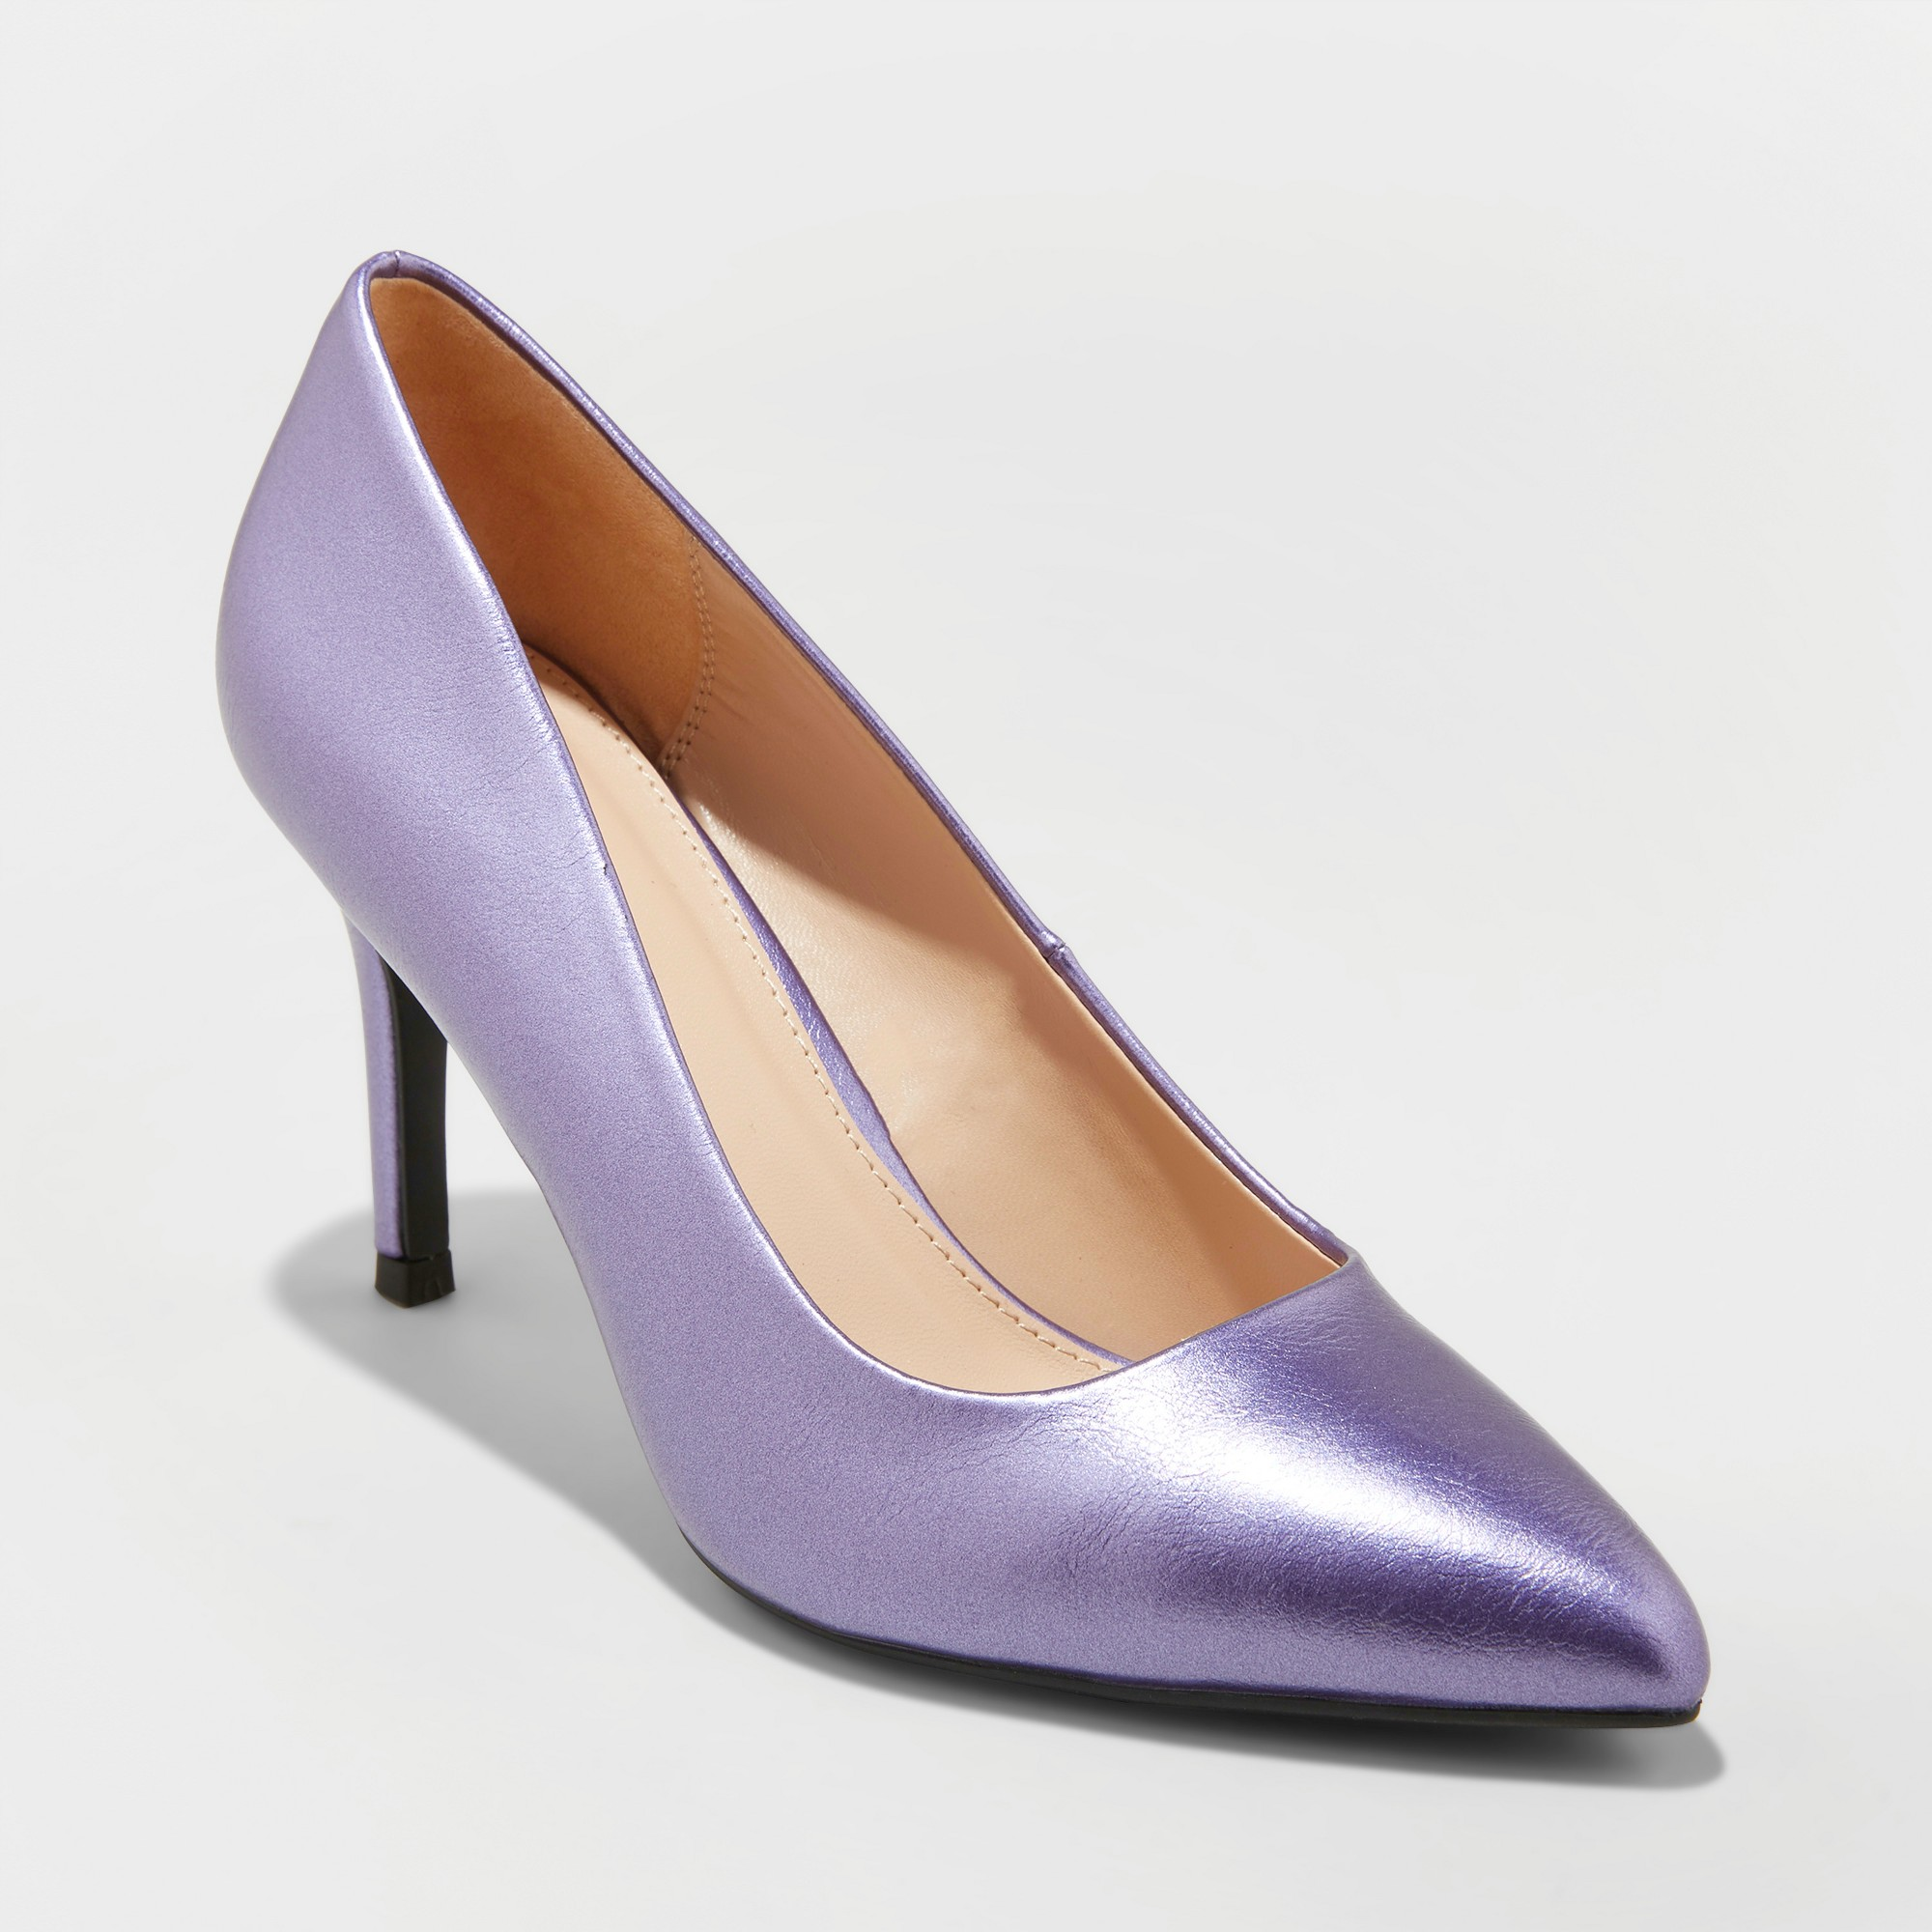 Women's Gemma Faux Leather Pointed Toe Heeled Pumps - A New Day Purple 6.5